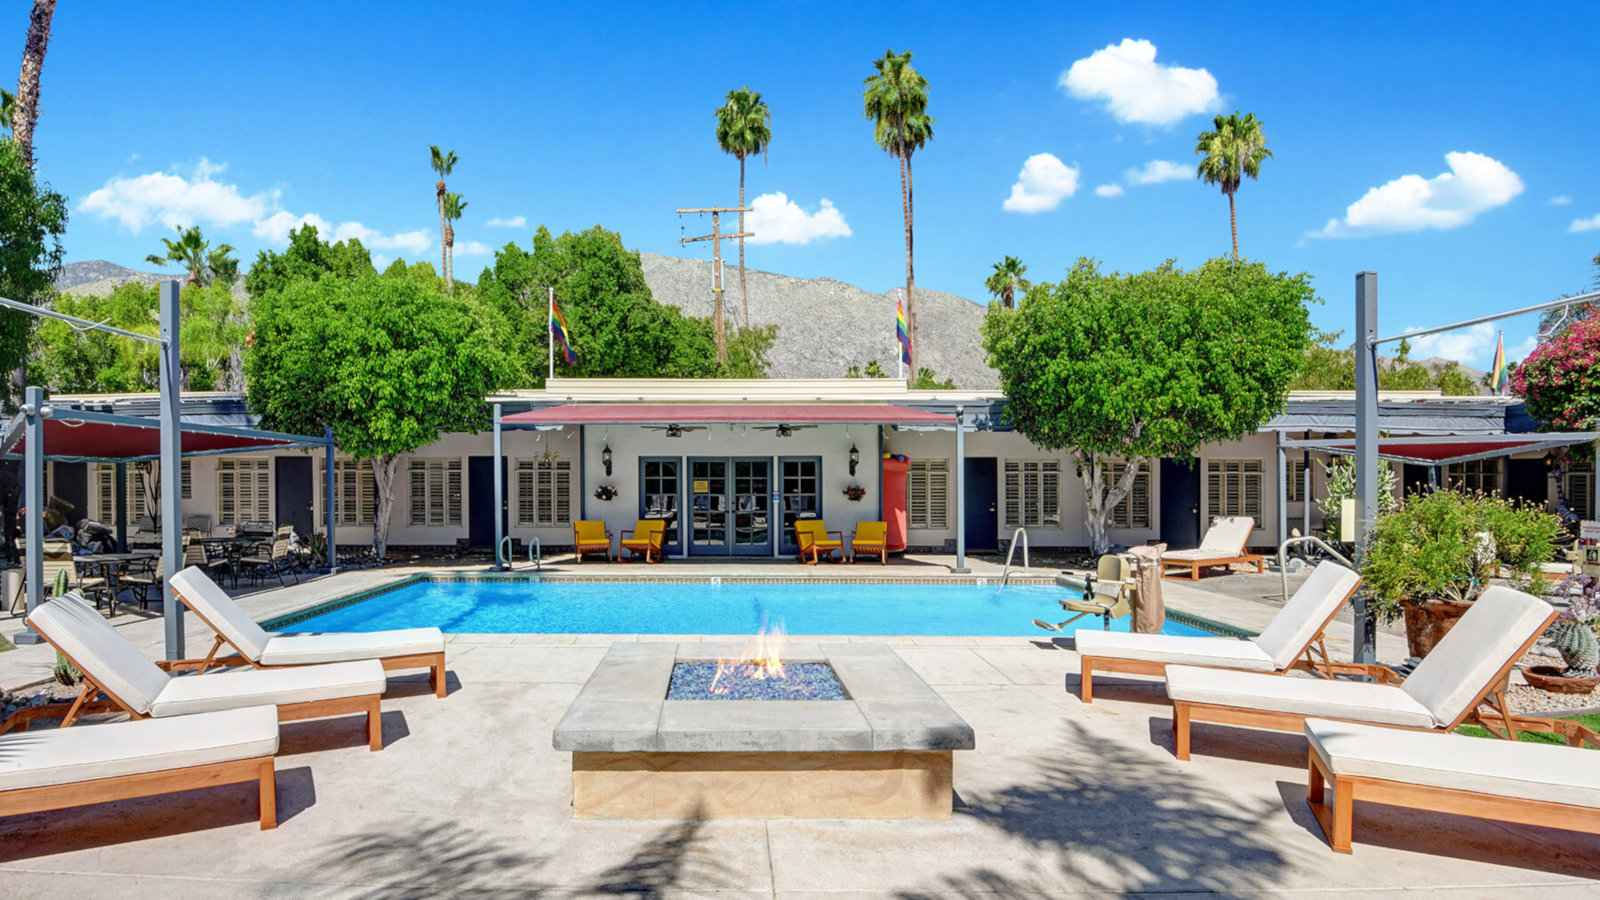 Desert Paradise Resort is one of the best gay resorts in Palm Springs that's clothing-optional and caters only to men